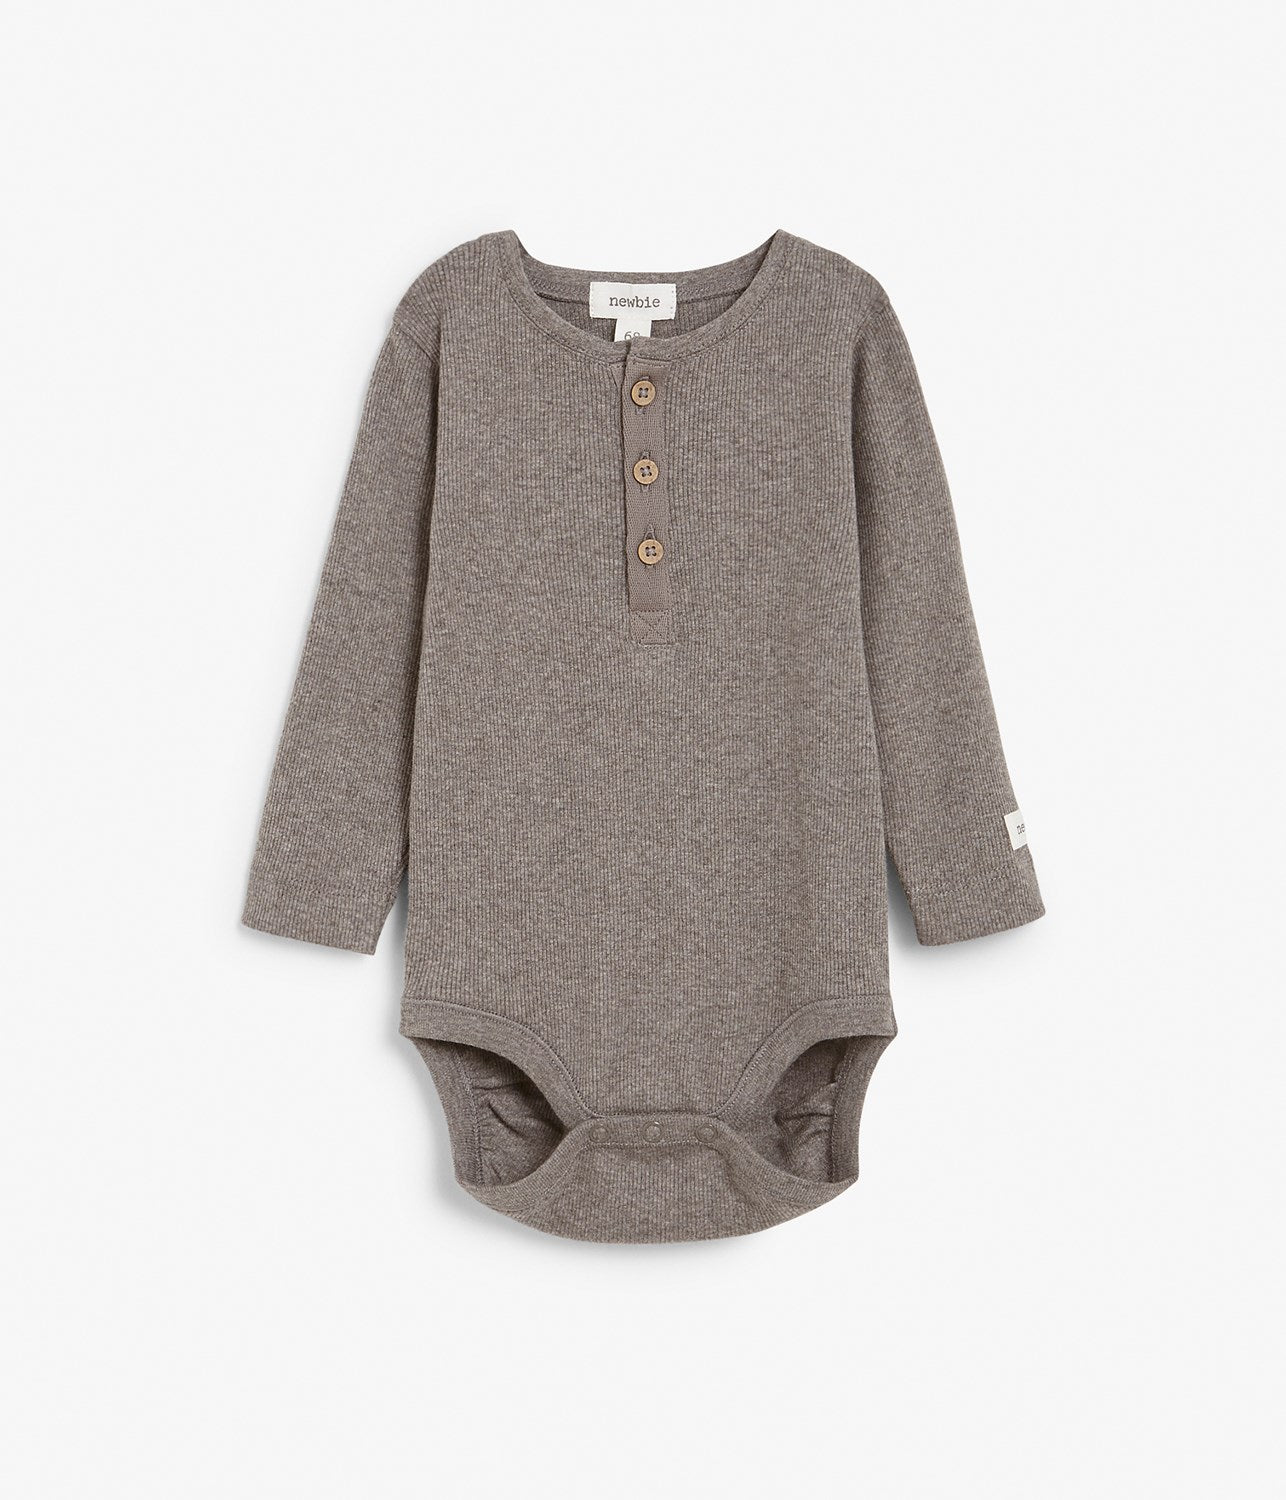 Baby brown ribbed basic body